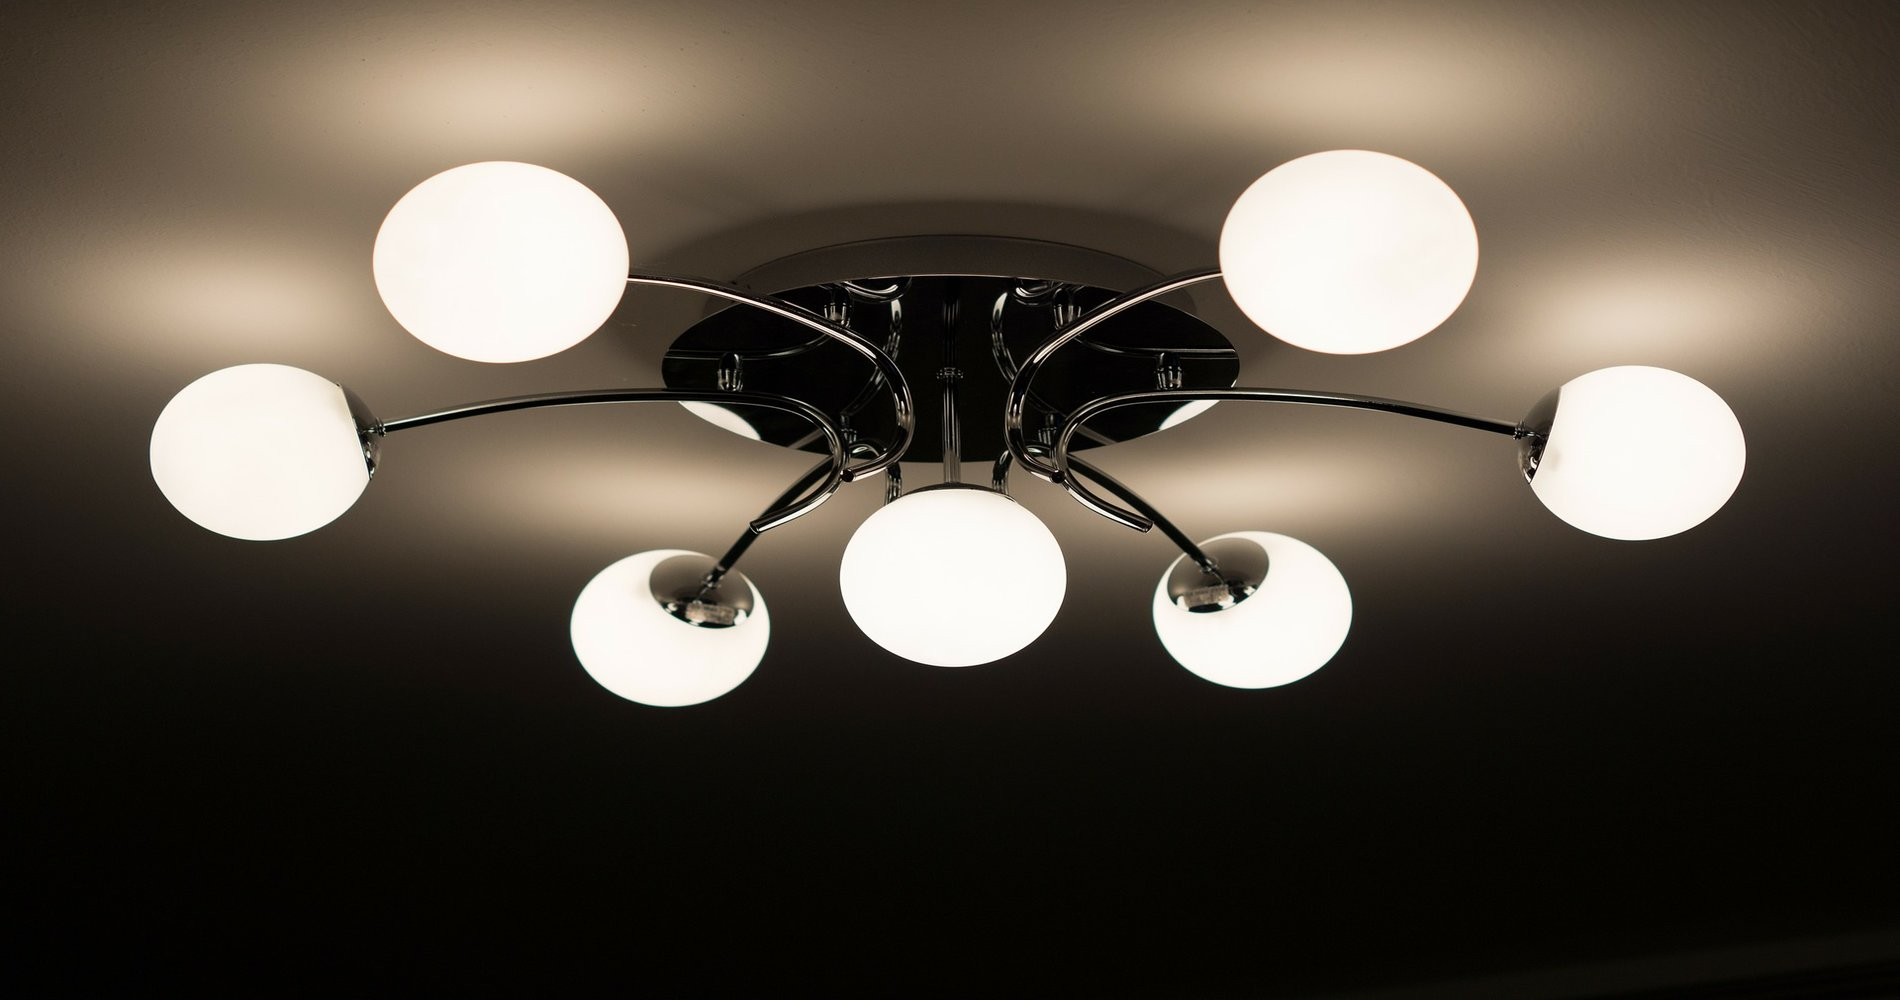 rsz_ceiling-lamp-335975_1920